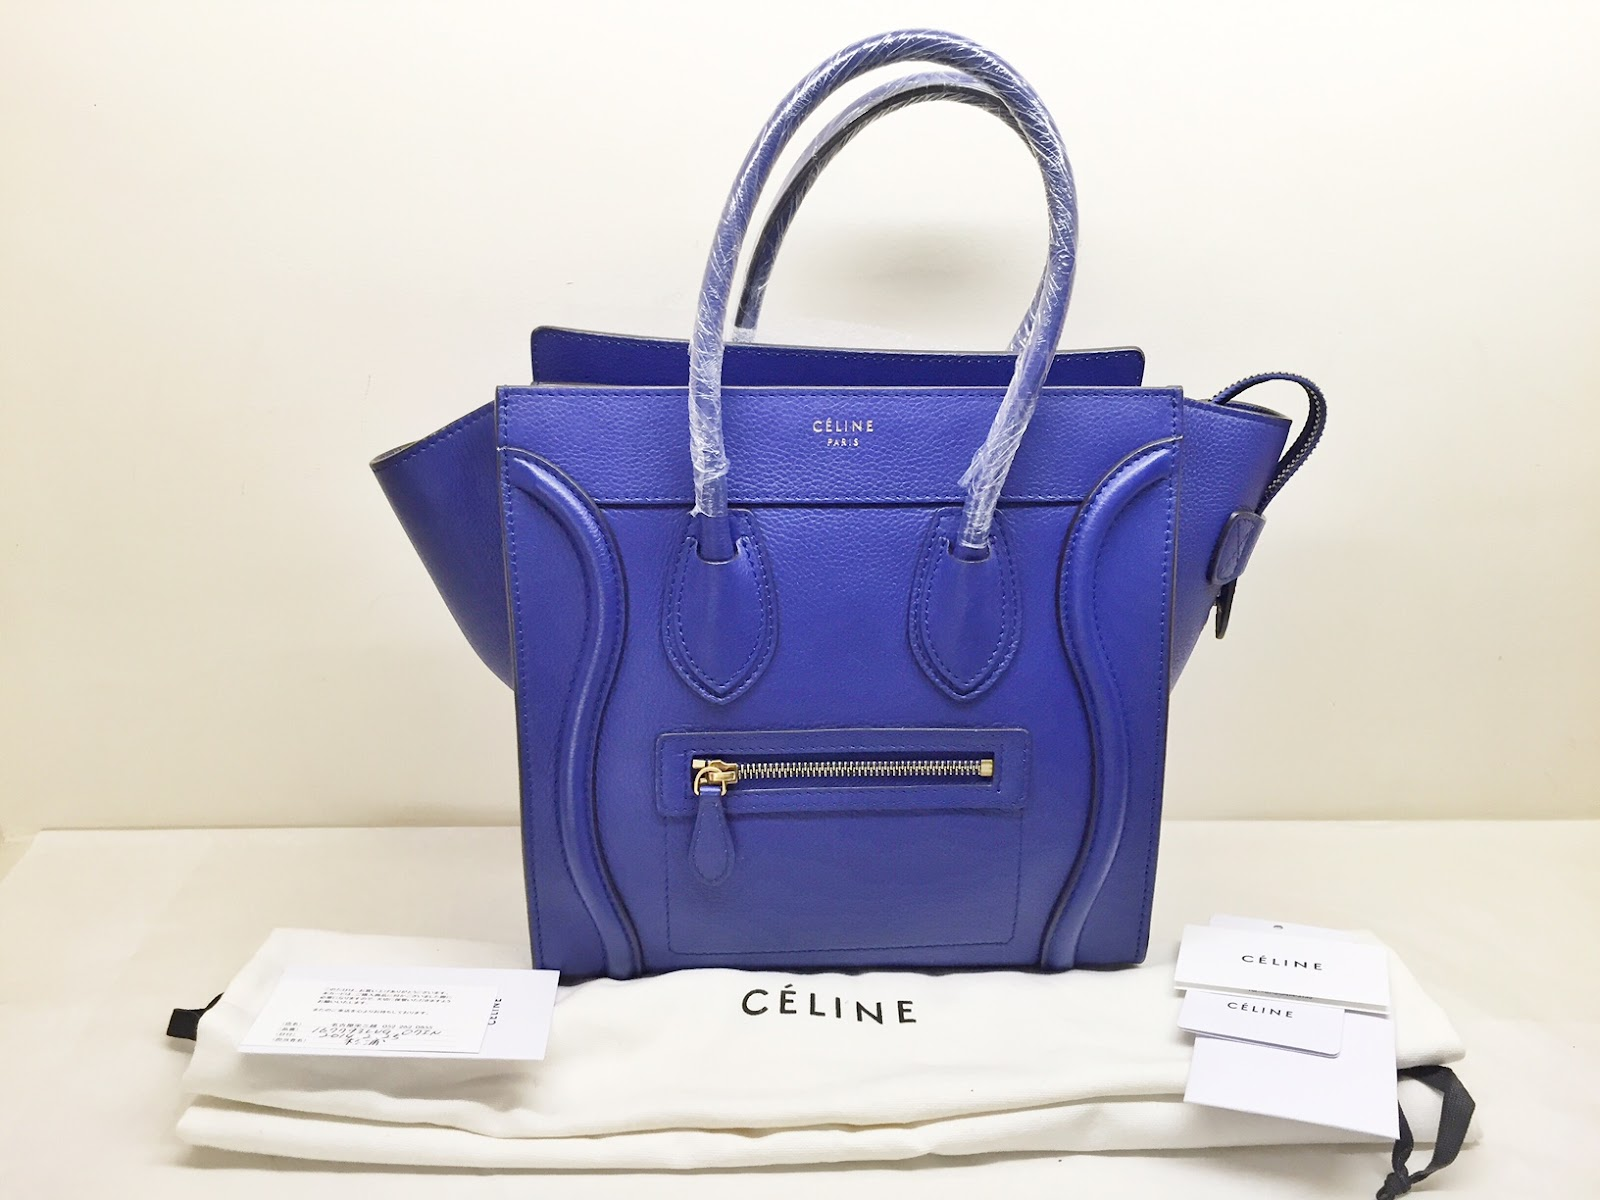 Cebu, Fashion Blogger, Beauty Blogger, Lifestyle, Luxury Items, Cebu Shops, Celine Mini Luggage, Cebu Events, Fashion Curator Manila, branded bags, for sale, Cebu trunk show, pop-up shop